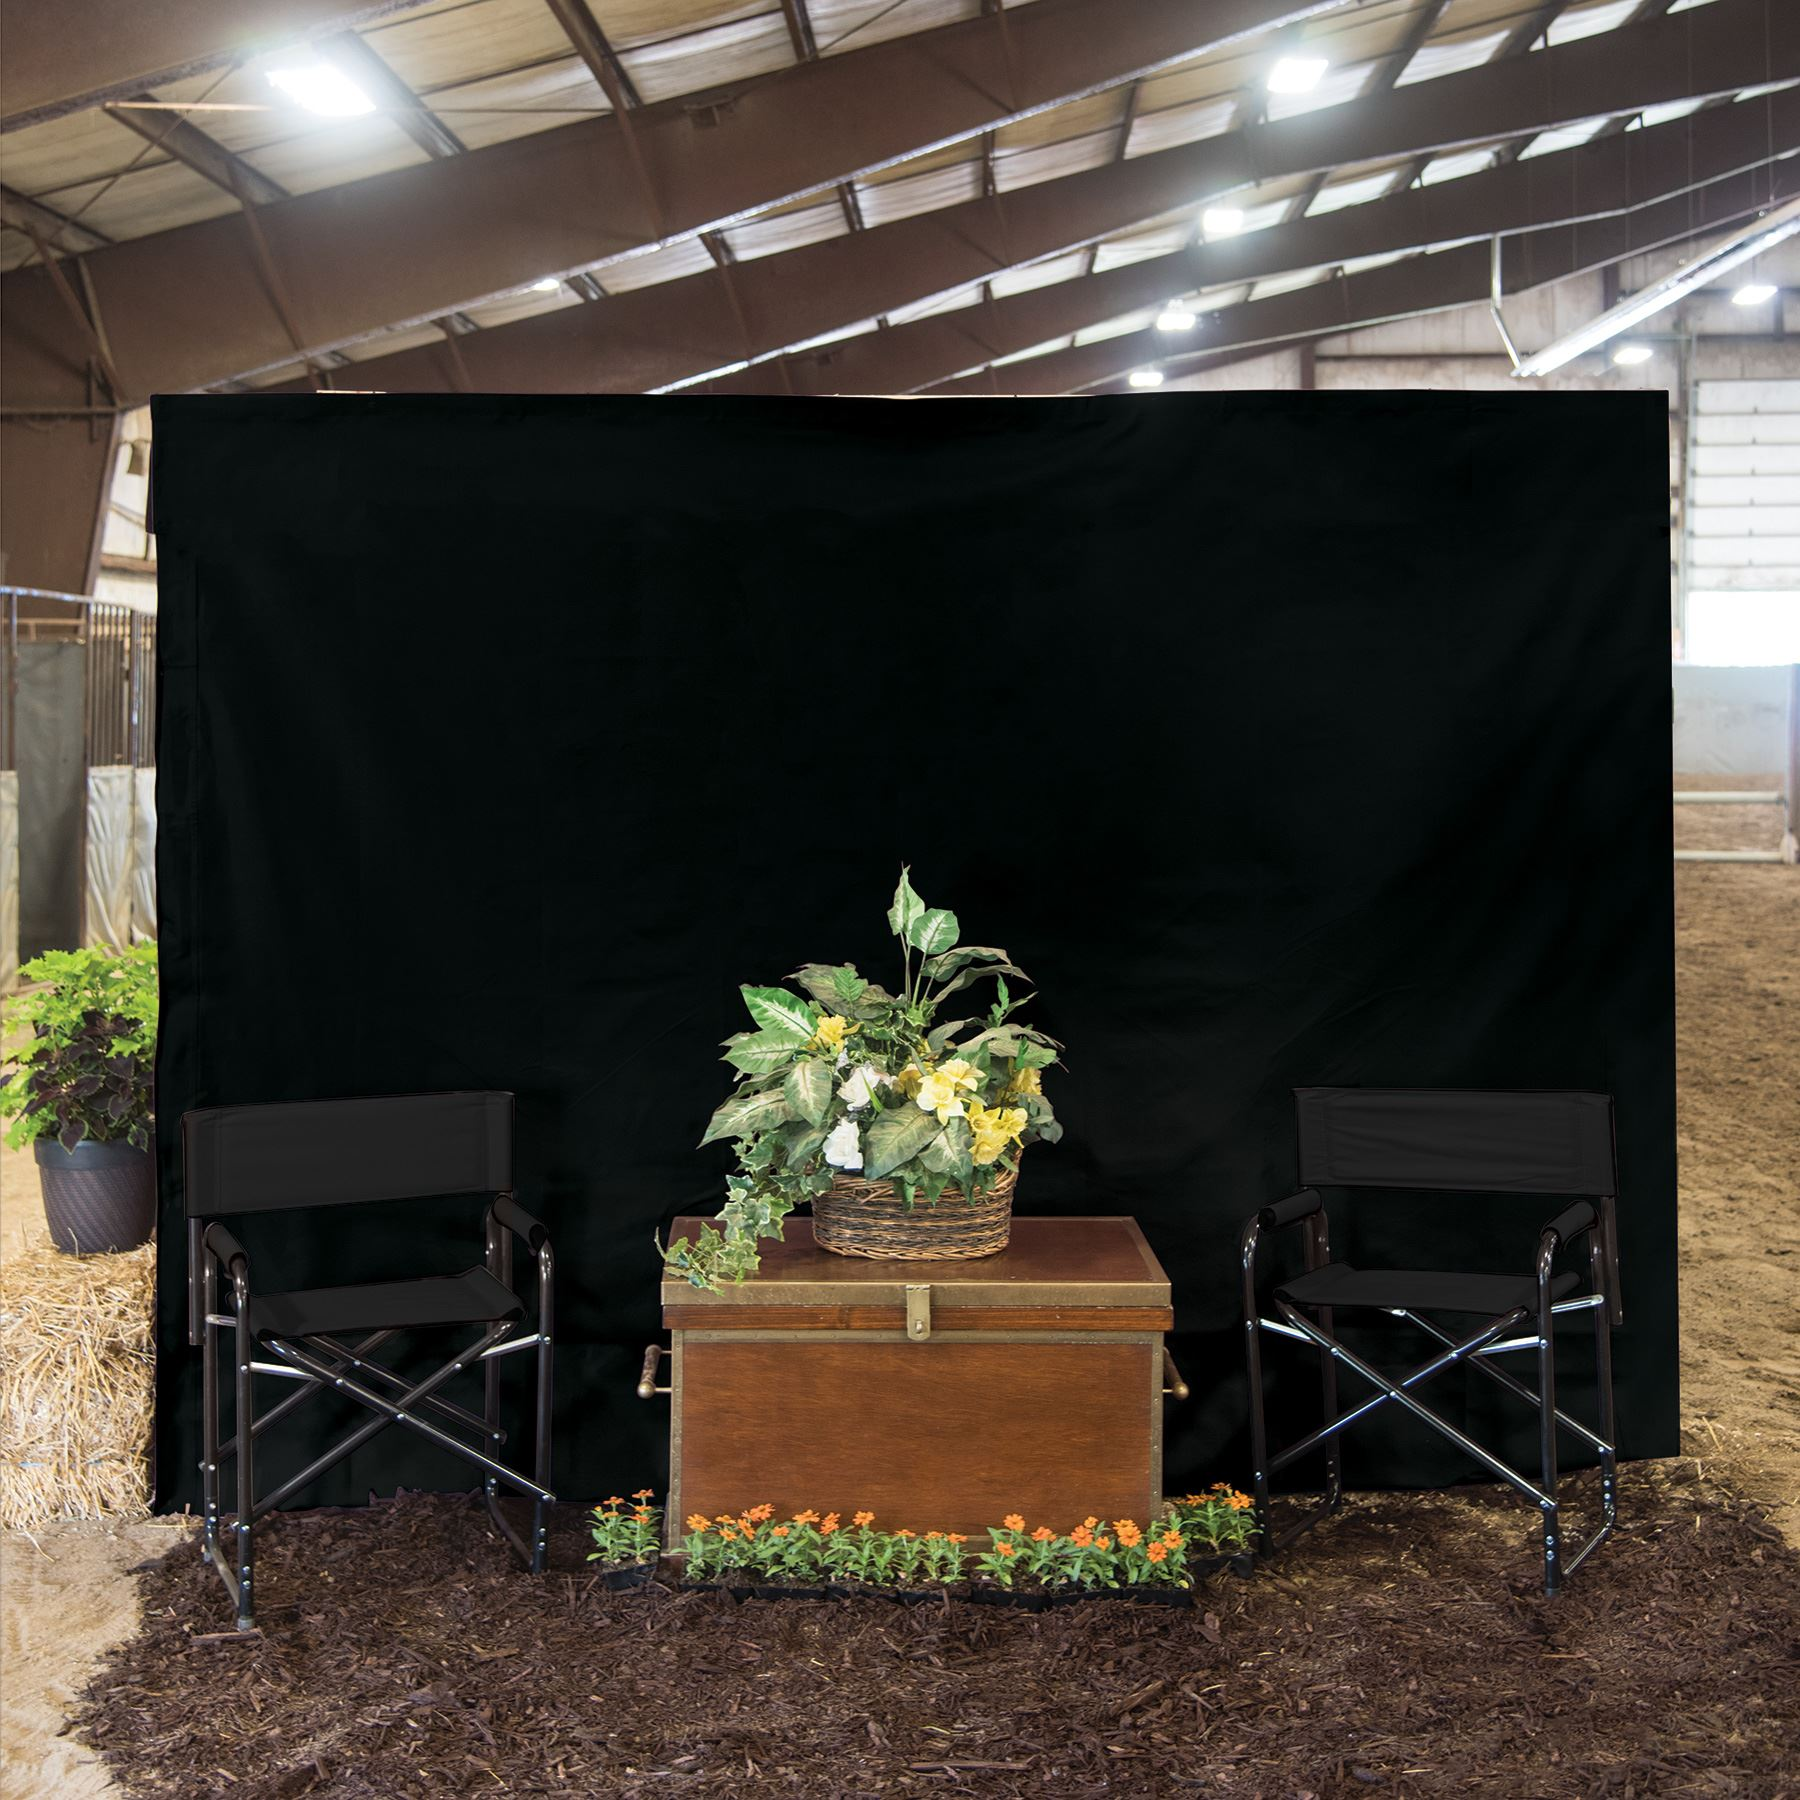 Dura Tech 174 Wall Panel 8 X 10 In Stable At Schneider Saddlery